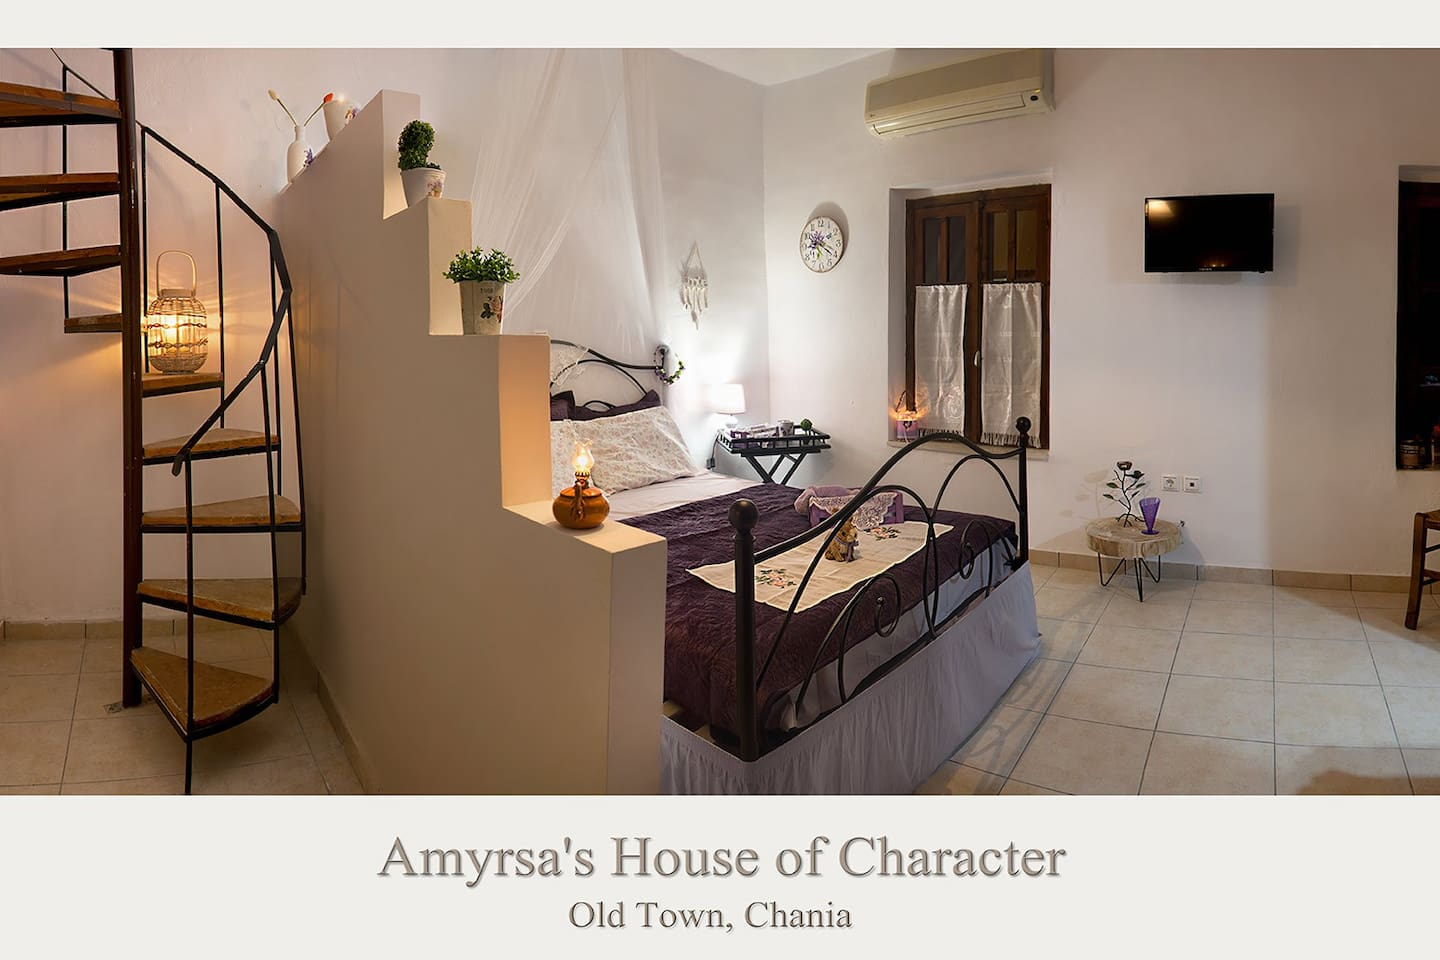 Welcome to Amyrsa's House of Character!